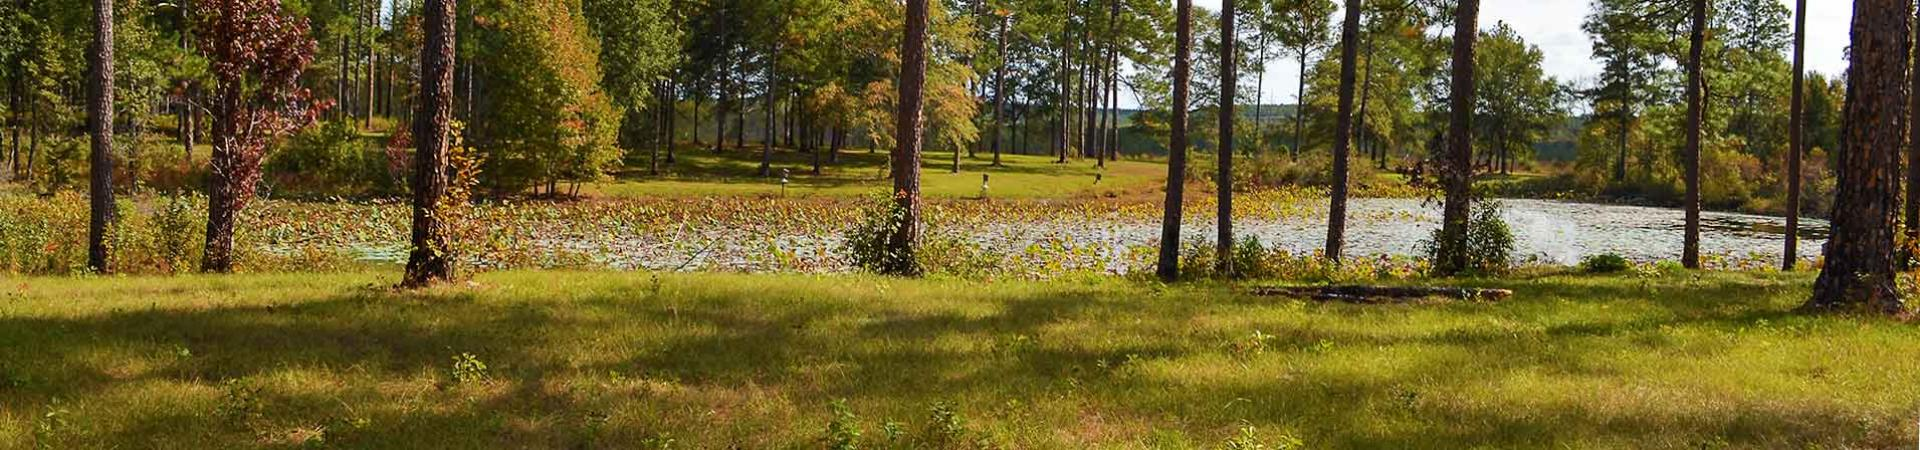 Camping Area and Pond